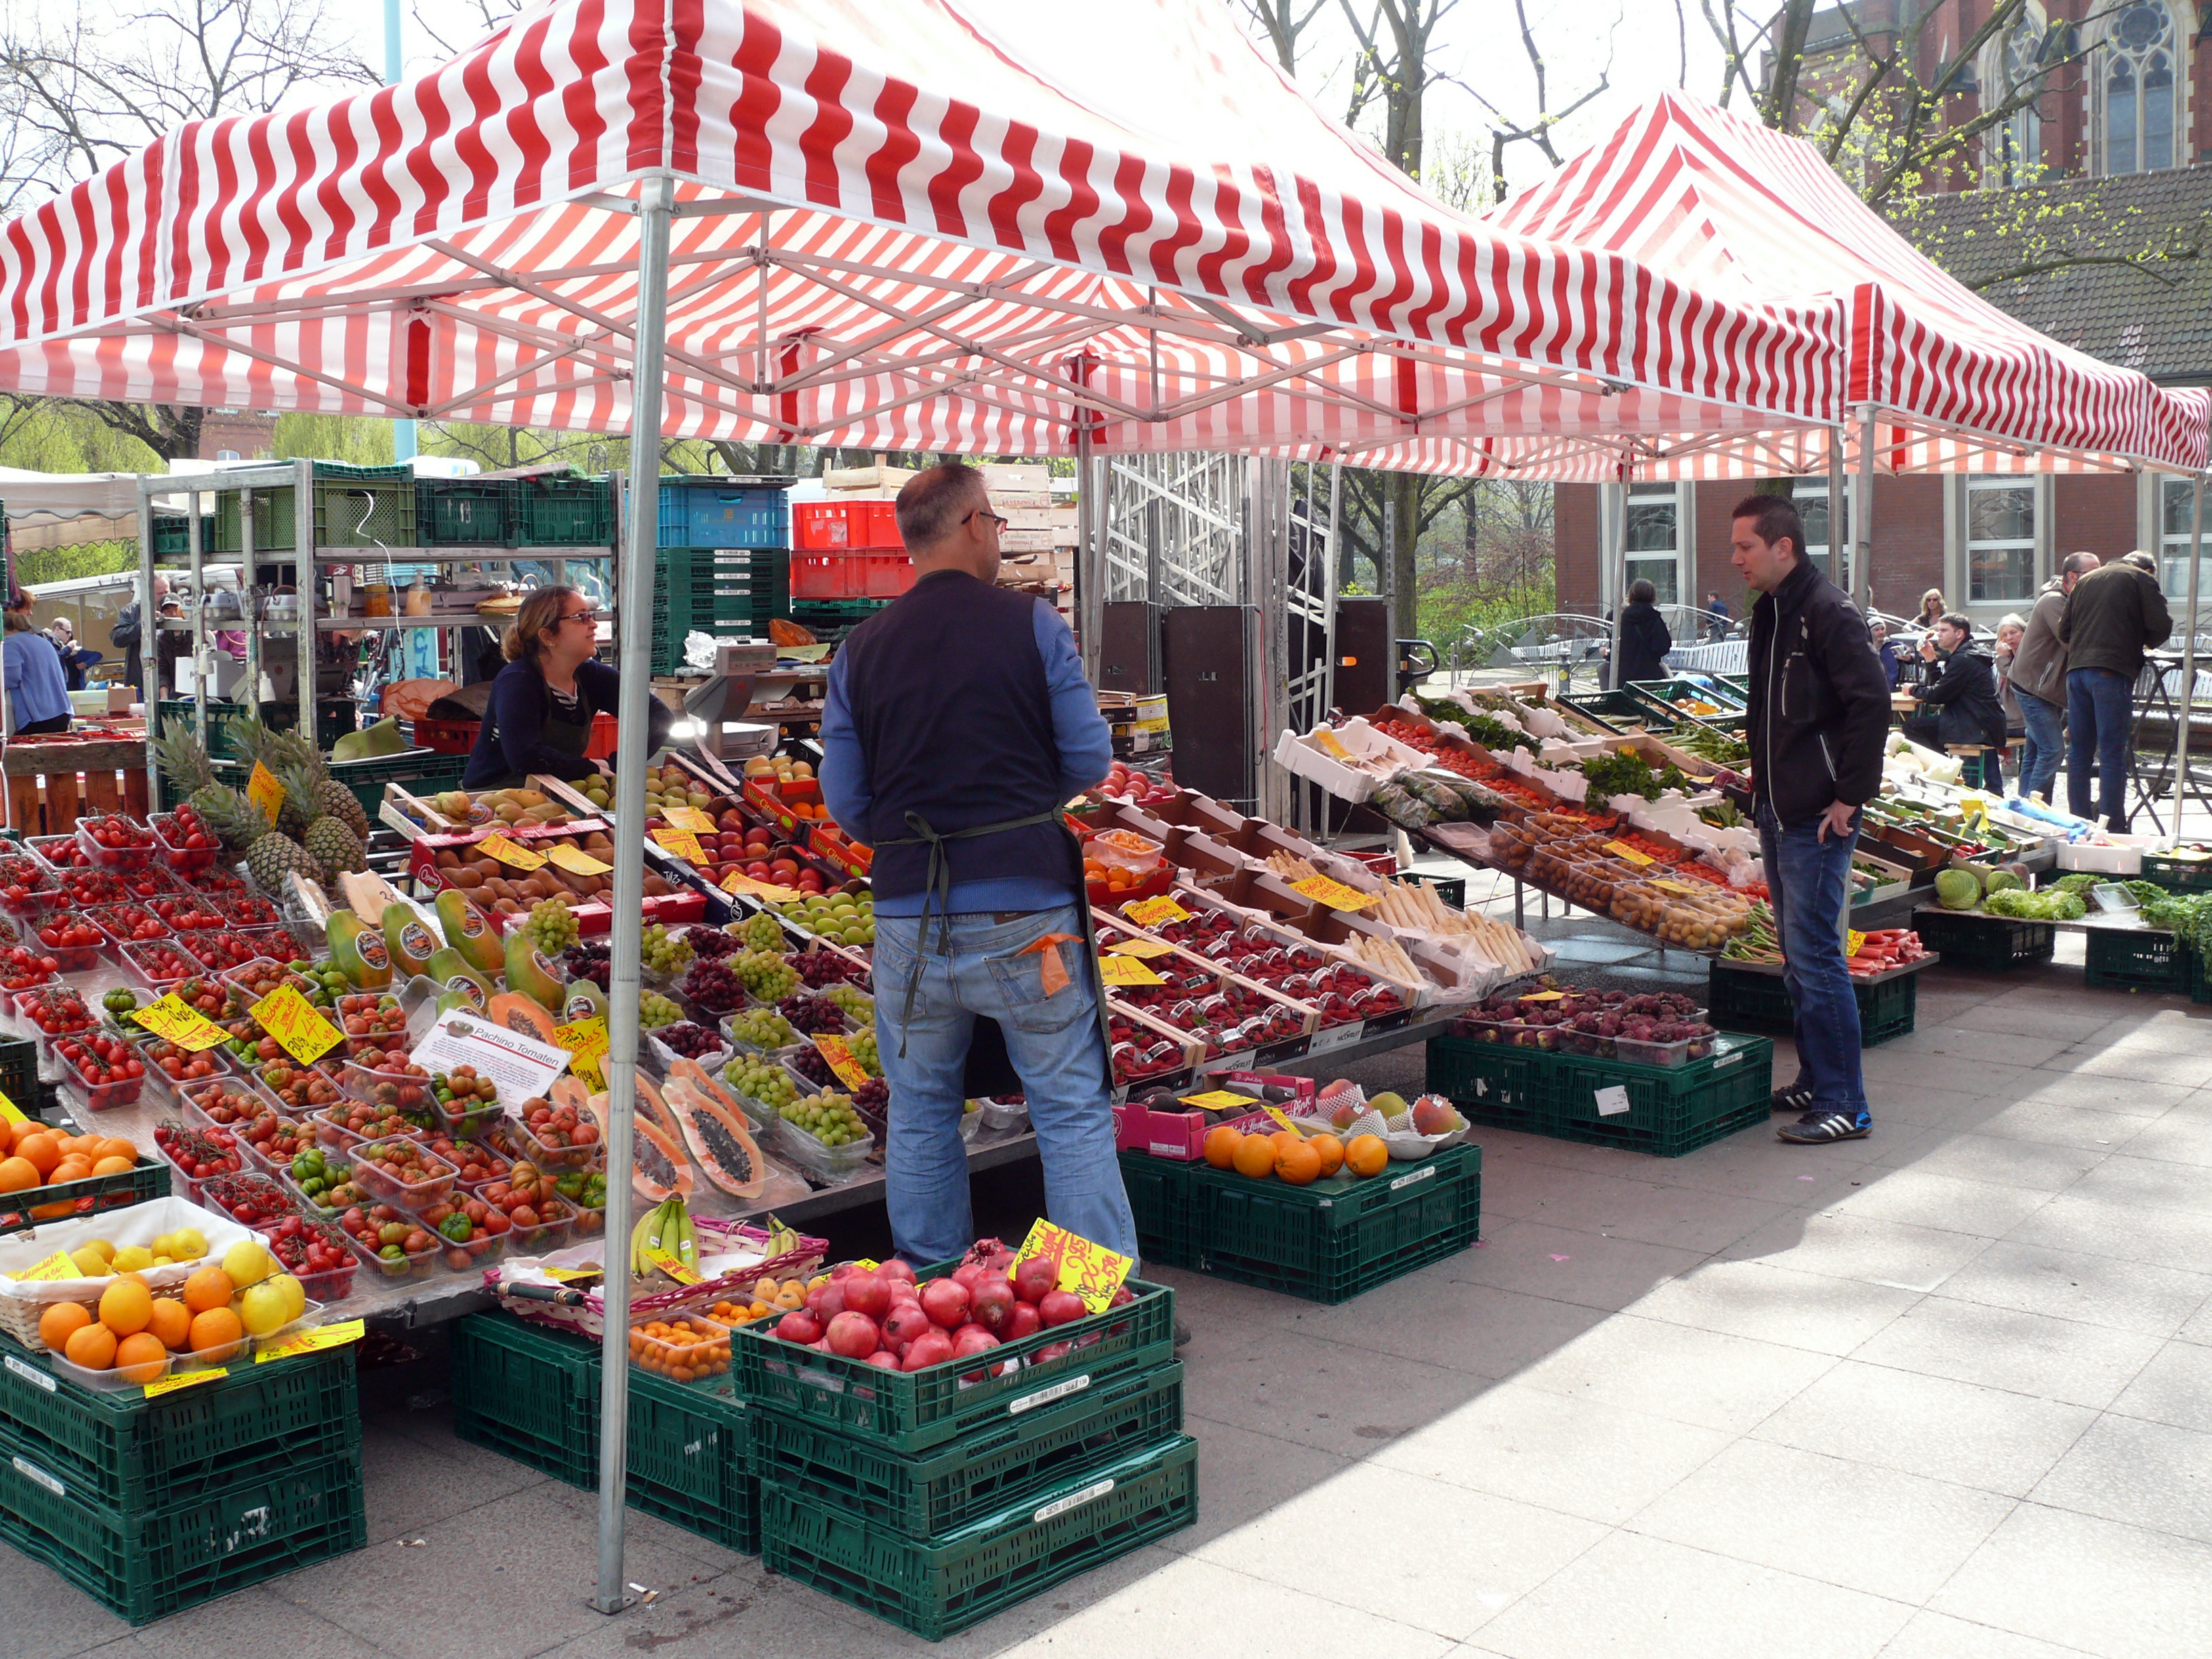 Must-see places: Winterfeldplatz Markt in Berlin, a traditional farmer's market.